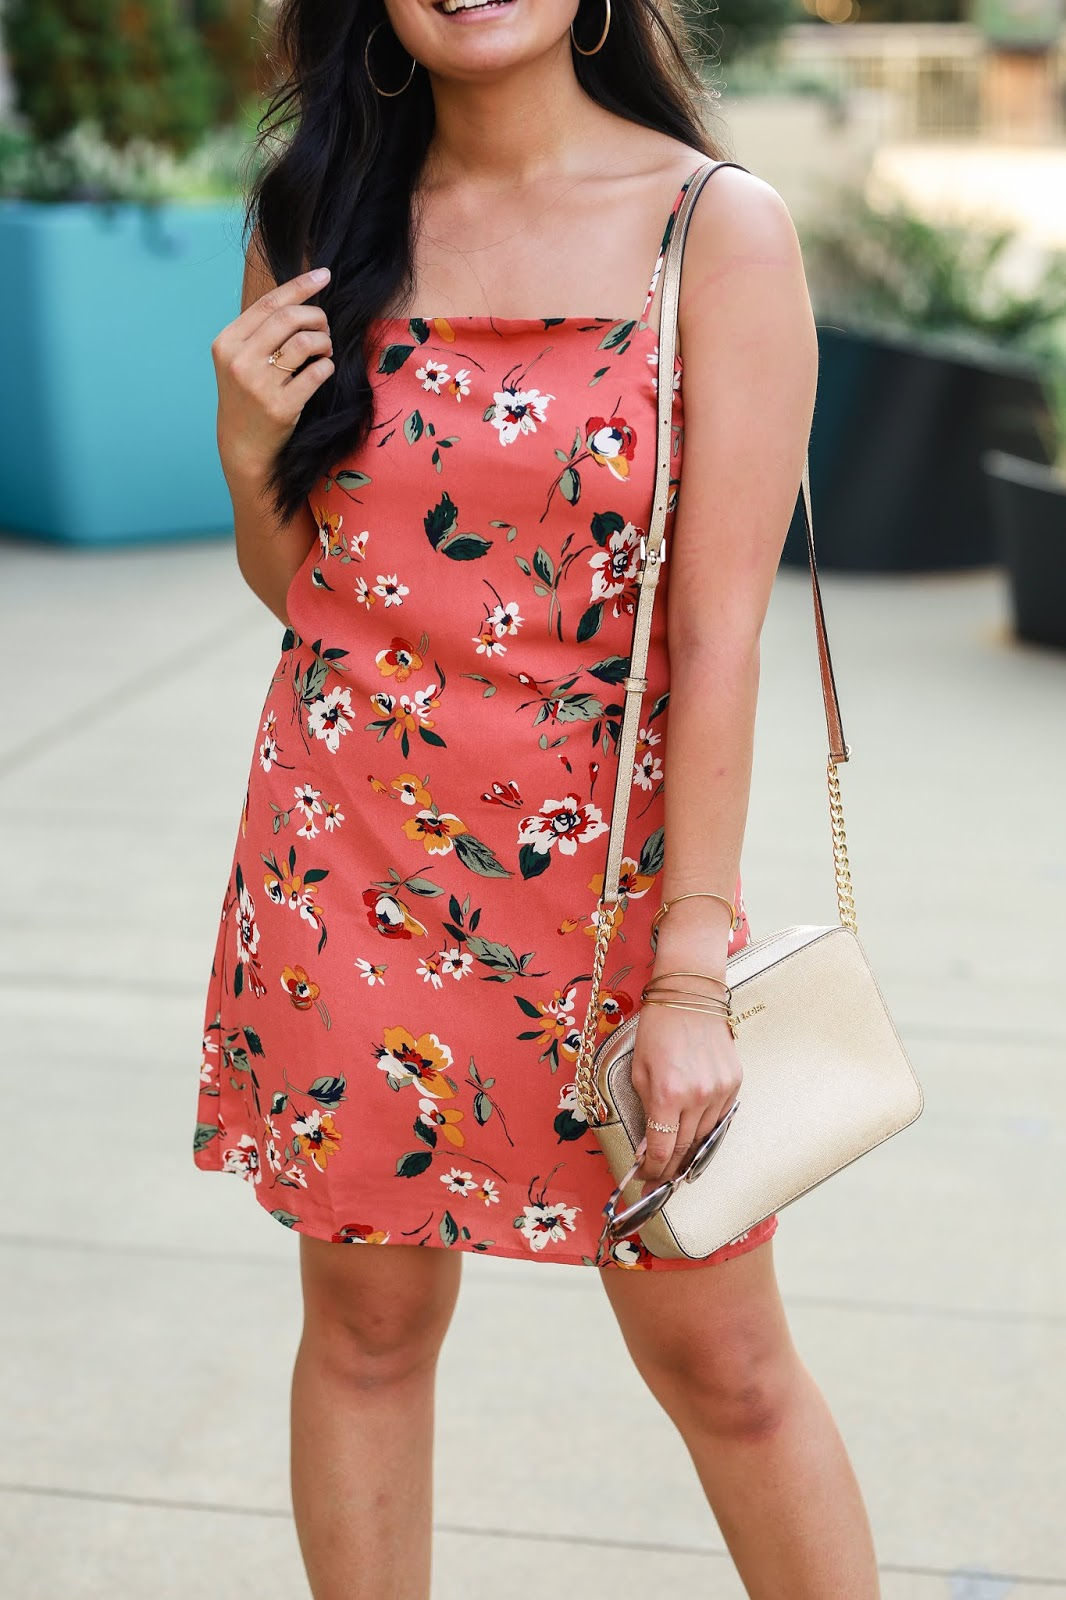 How to transition your summer dress to fall   Orange floral dress   Affordable outfit idea